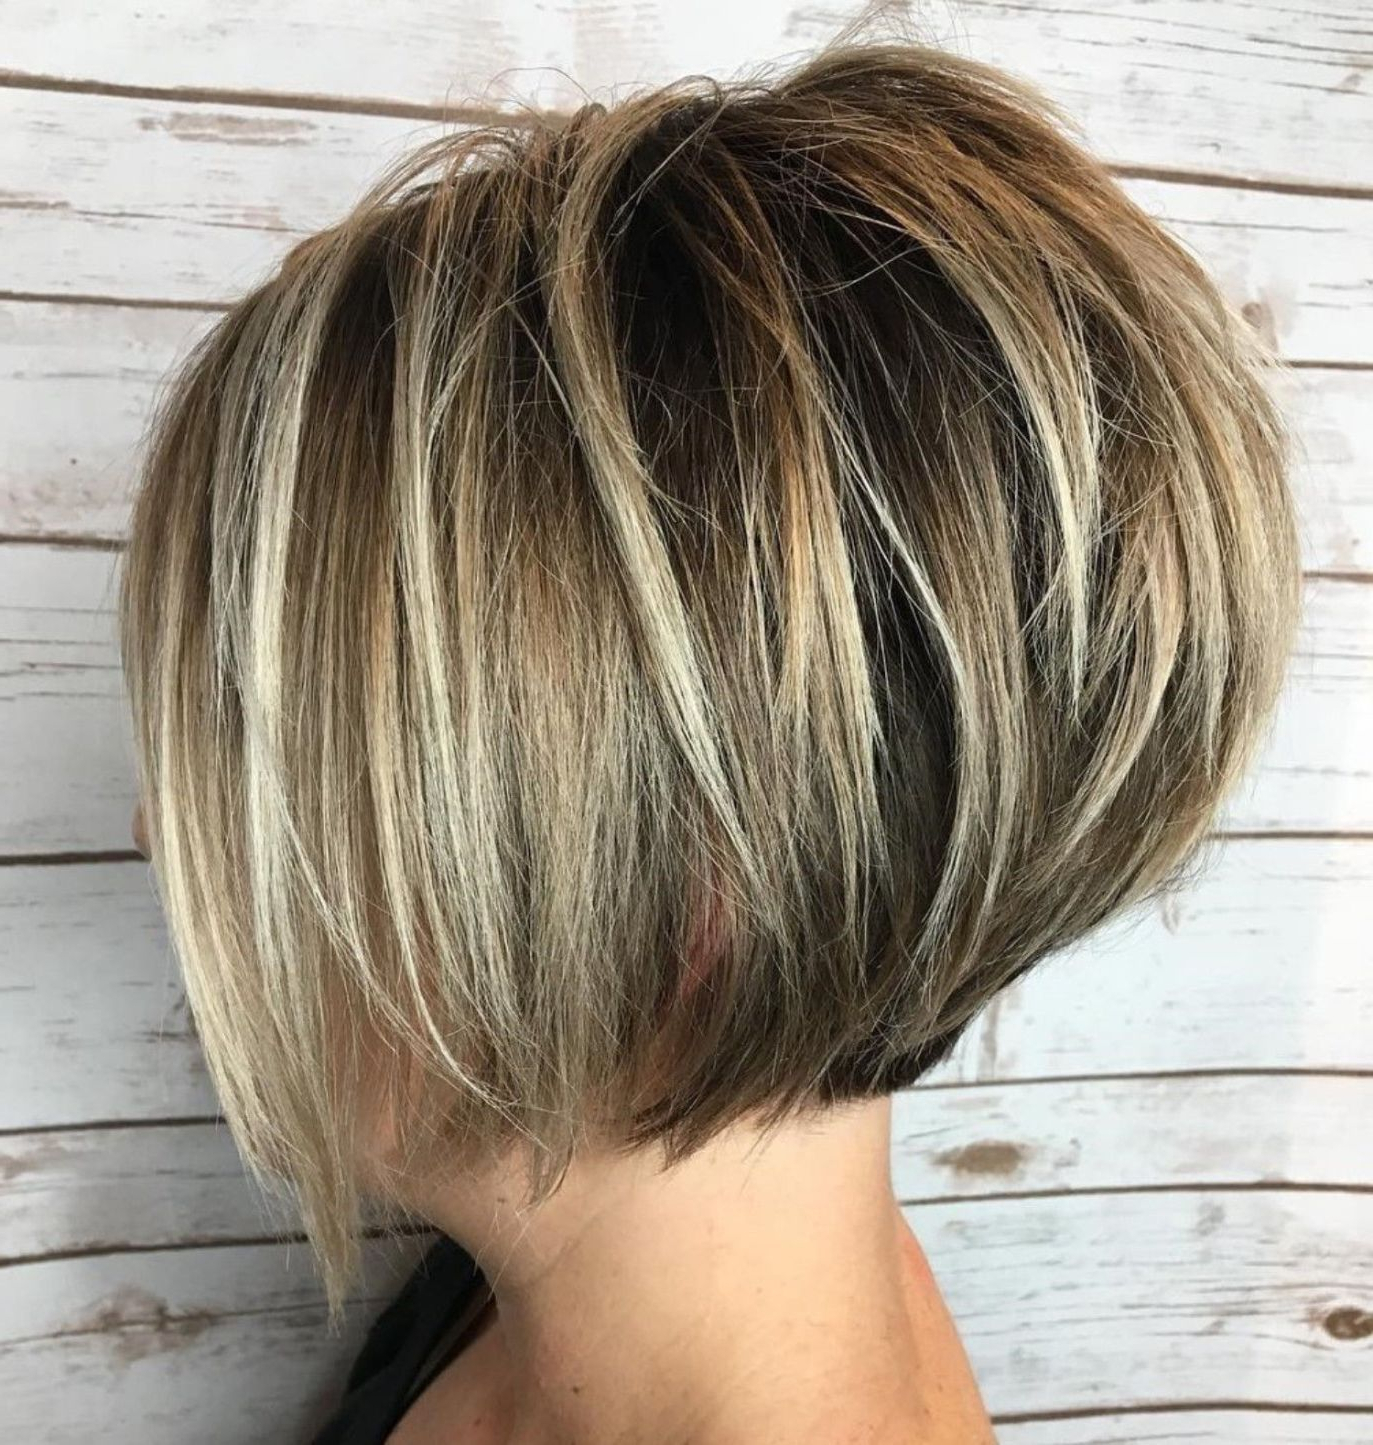 70 Cute And Easy To Style Short Layered Hairstyles | Hairstyles Over Regarding Short Layered Hairstyles (View 3 of 20)